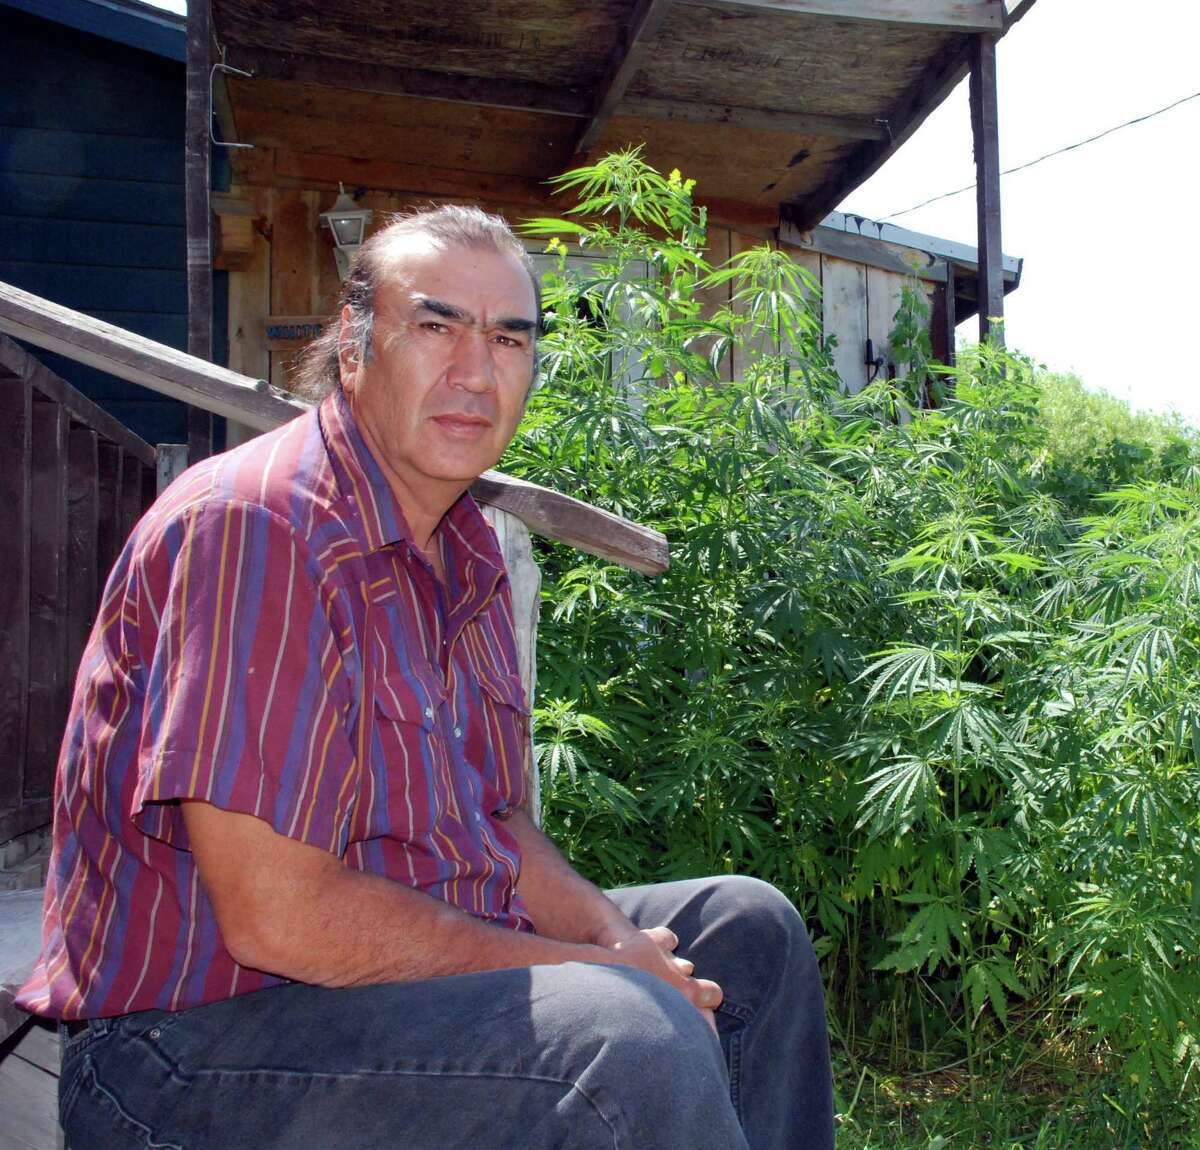 Alex White Plume at home in Manderson, S.D., with hemp plants that grew from DEA-raid seeds.sits on the back steps of his house near Manderson, S.D., on Tuesday, June 26, 2007, near some hemp plants that grew from seeds knocked off plants confiscated by federal drug agents. White Plume sought to grow hemp, a cousin of marijuana with only a trace of marijuana's drug, on his ranch on the Pine Ridge Indian Reservation. (AP Photo/Chet Brokaw)